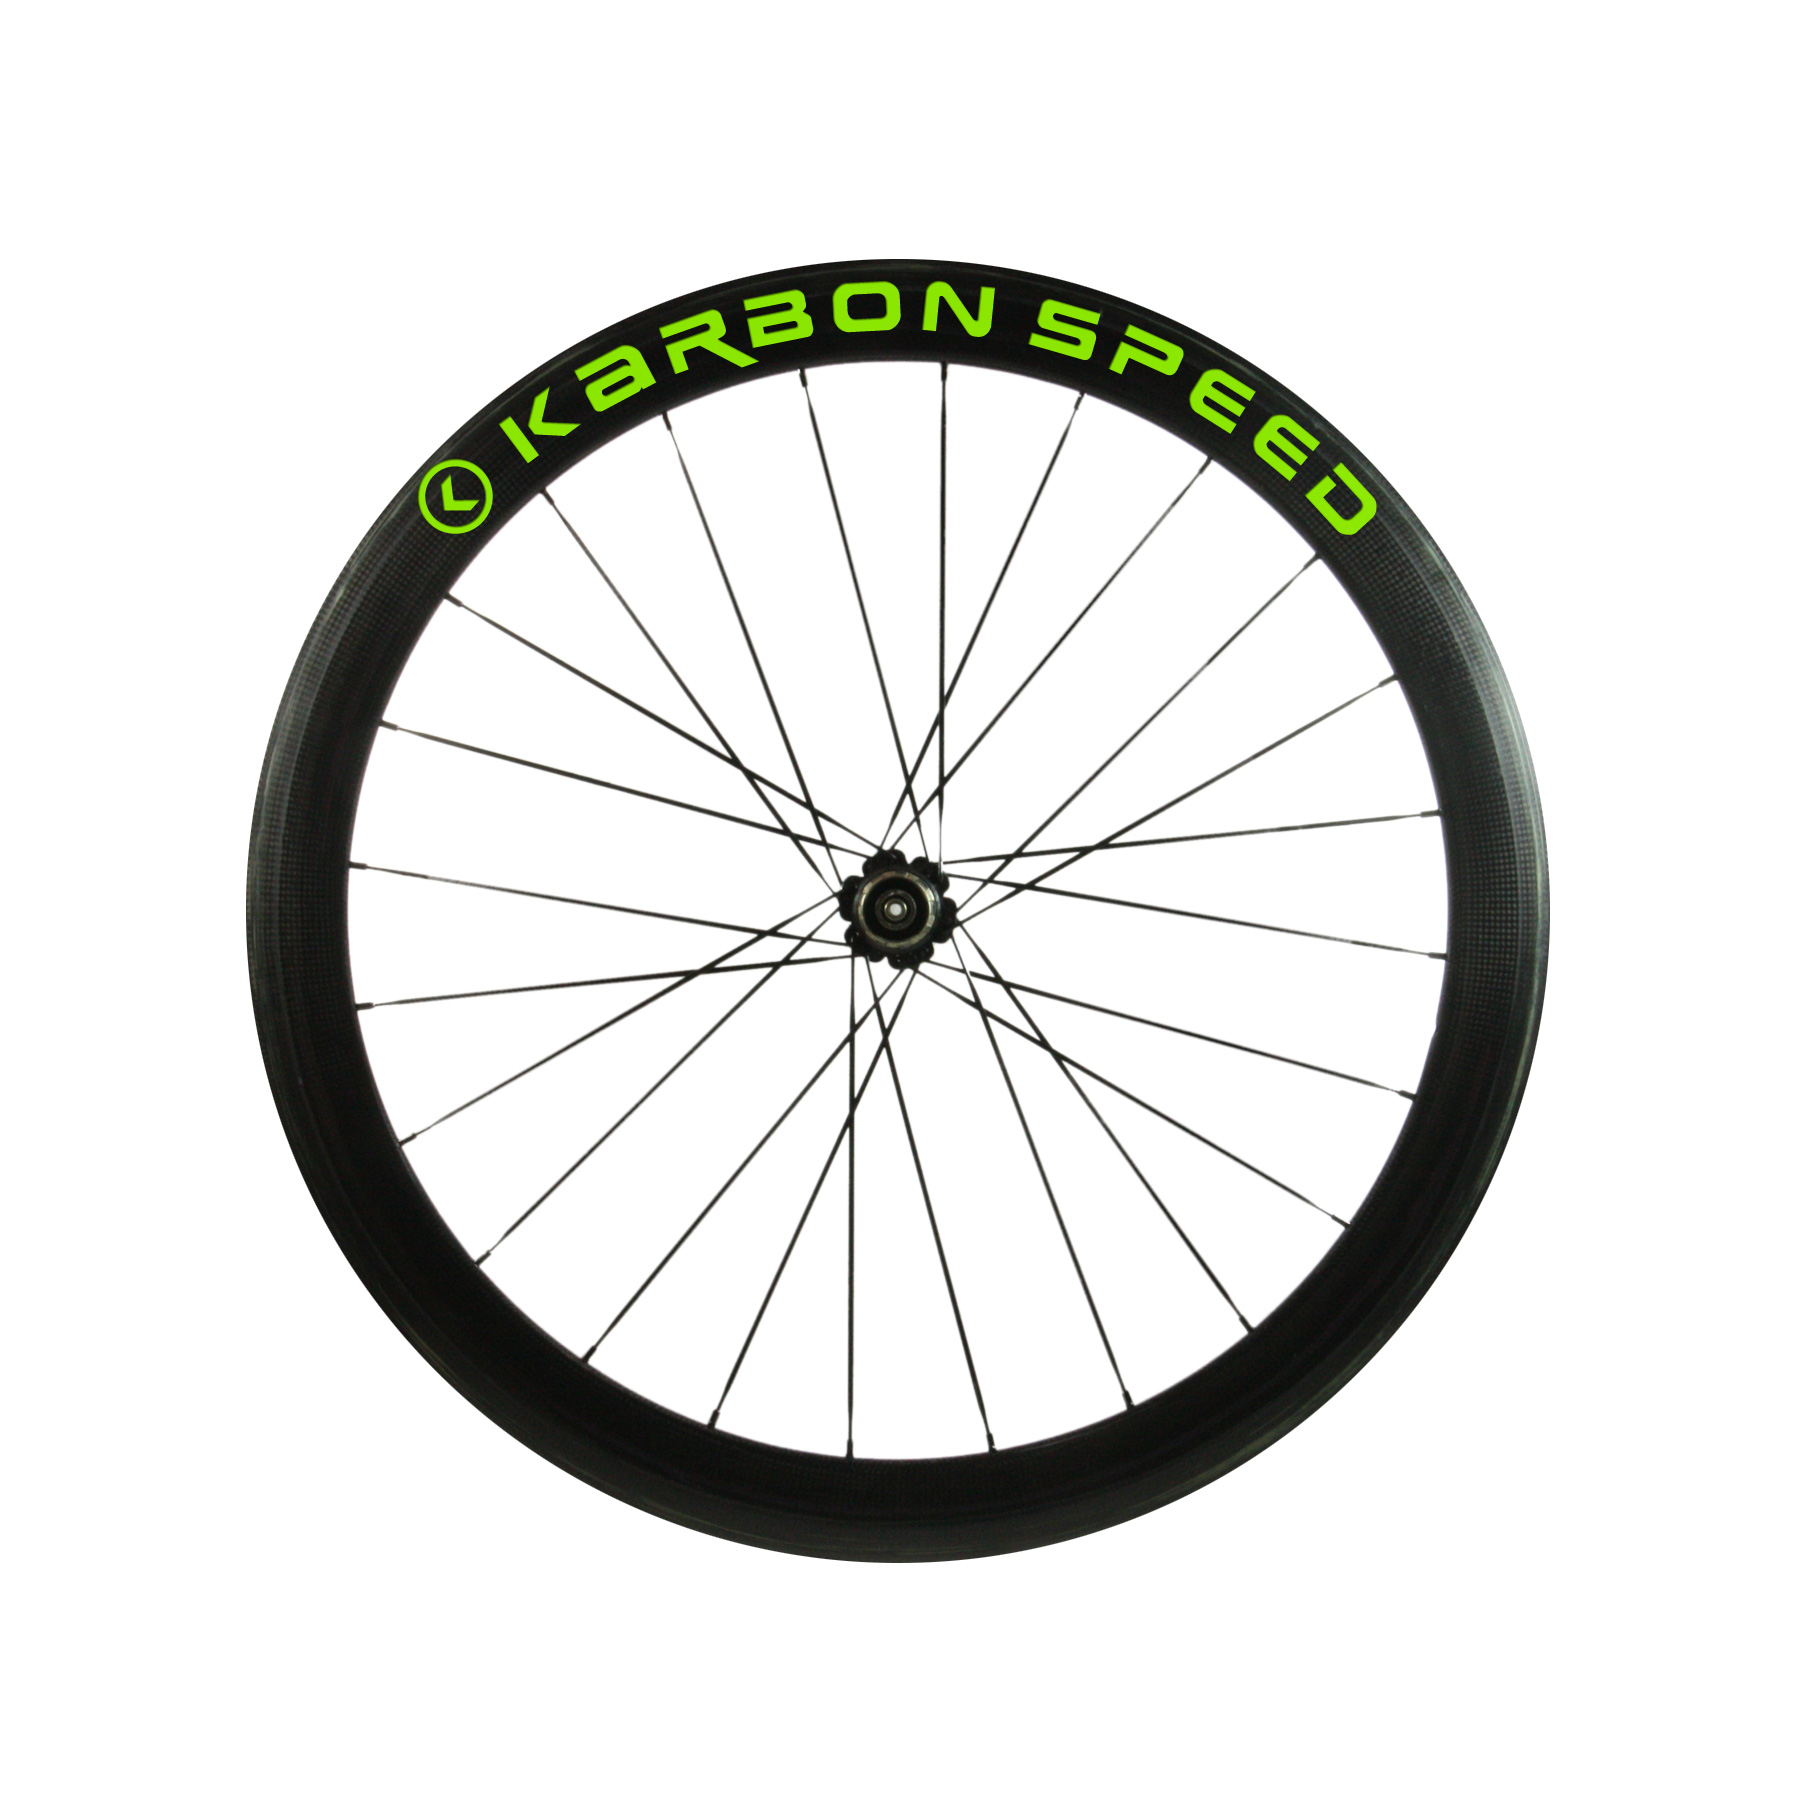 Karbon Speed | Rear Wheel Photo